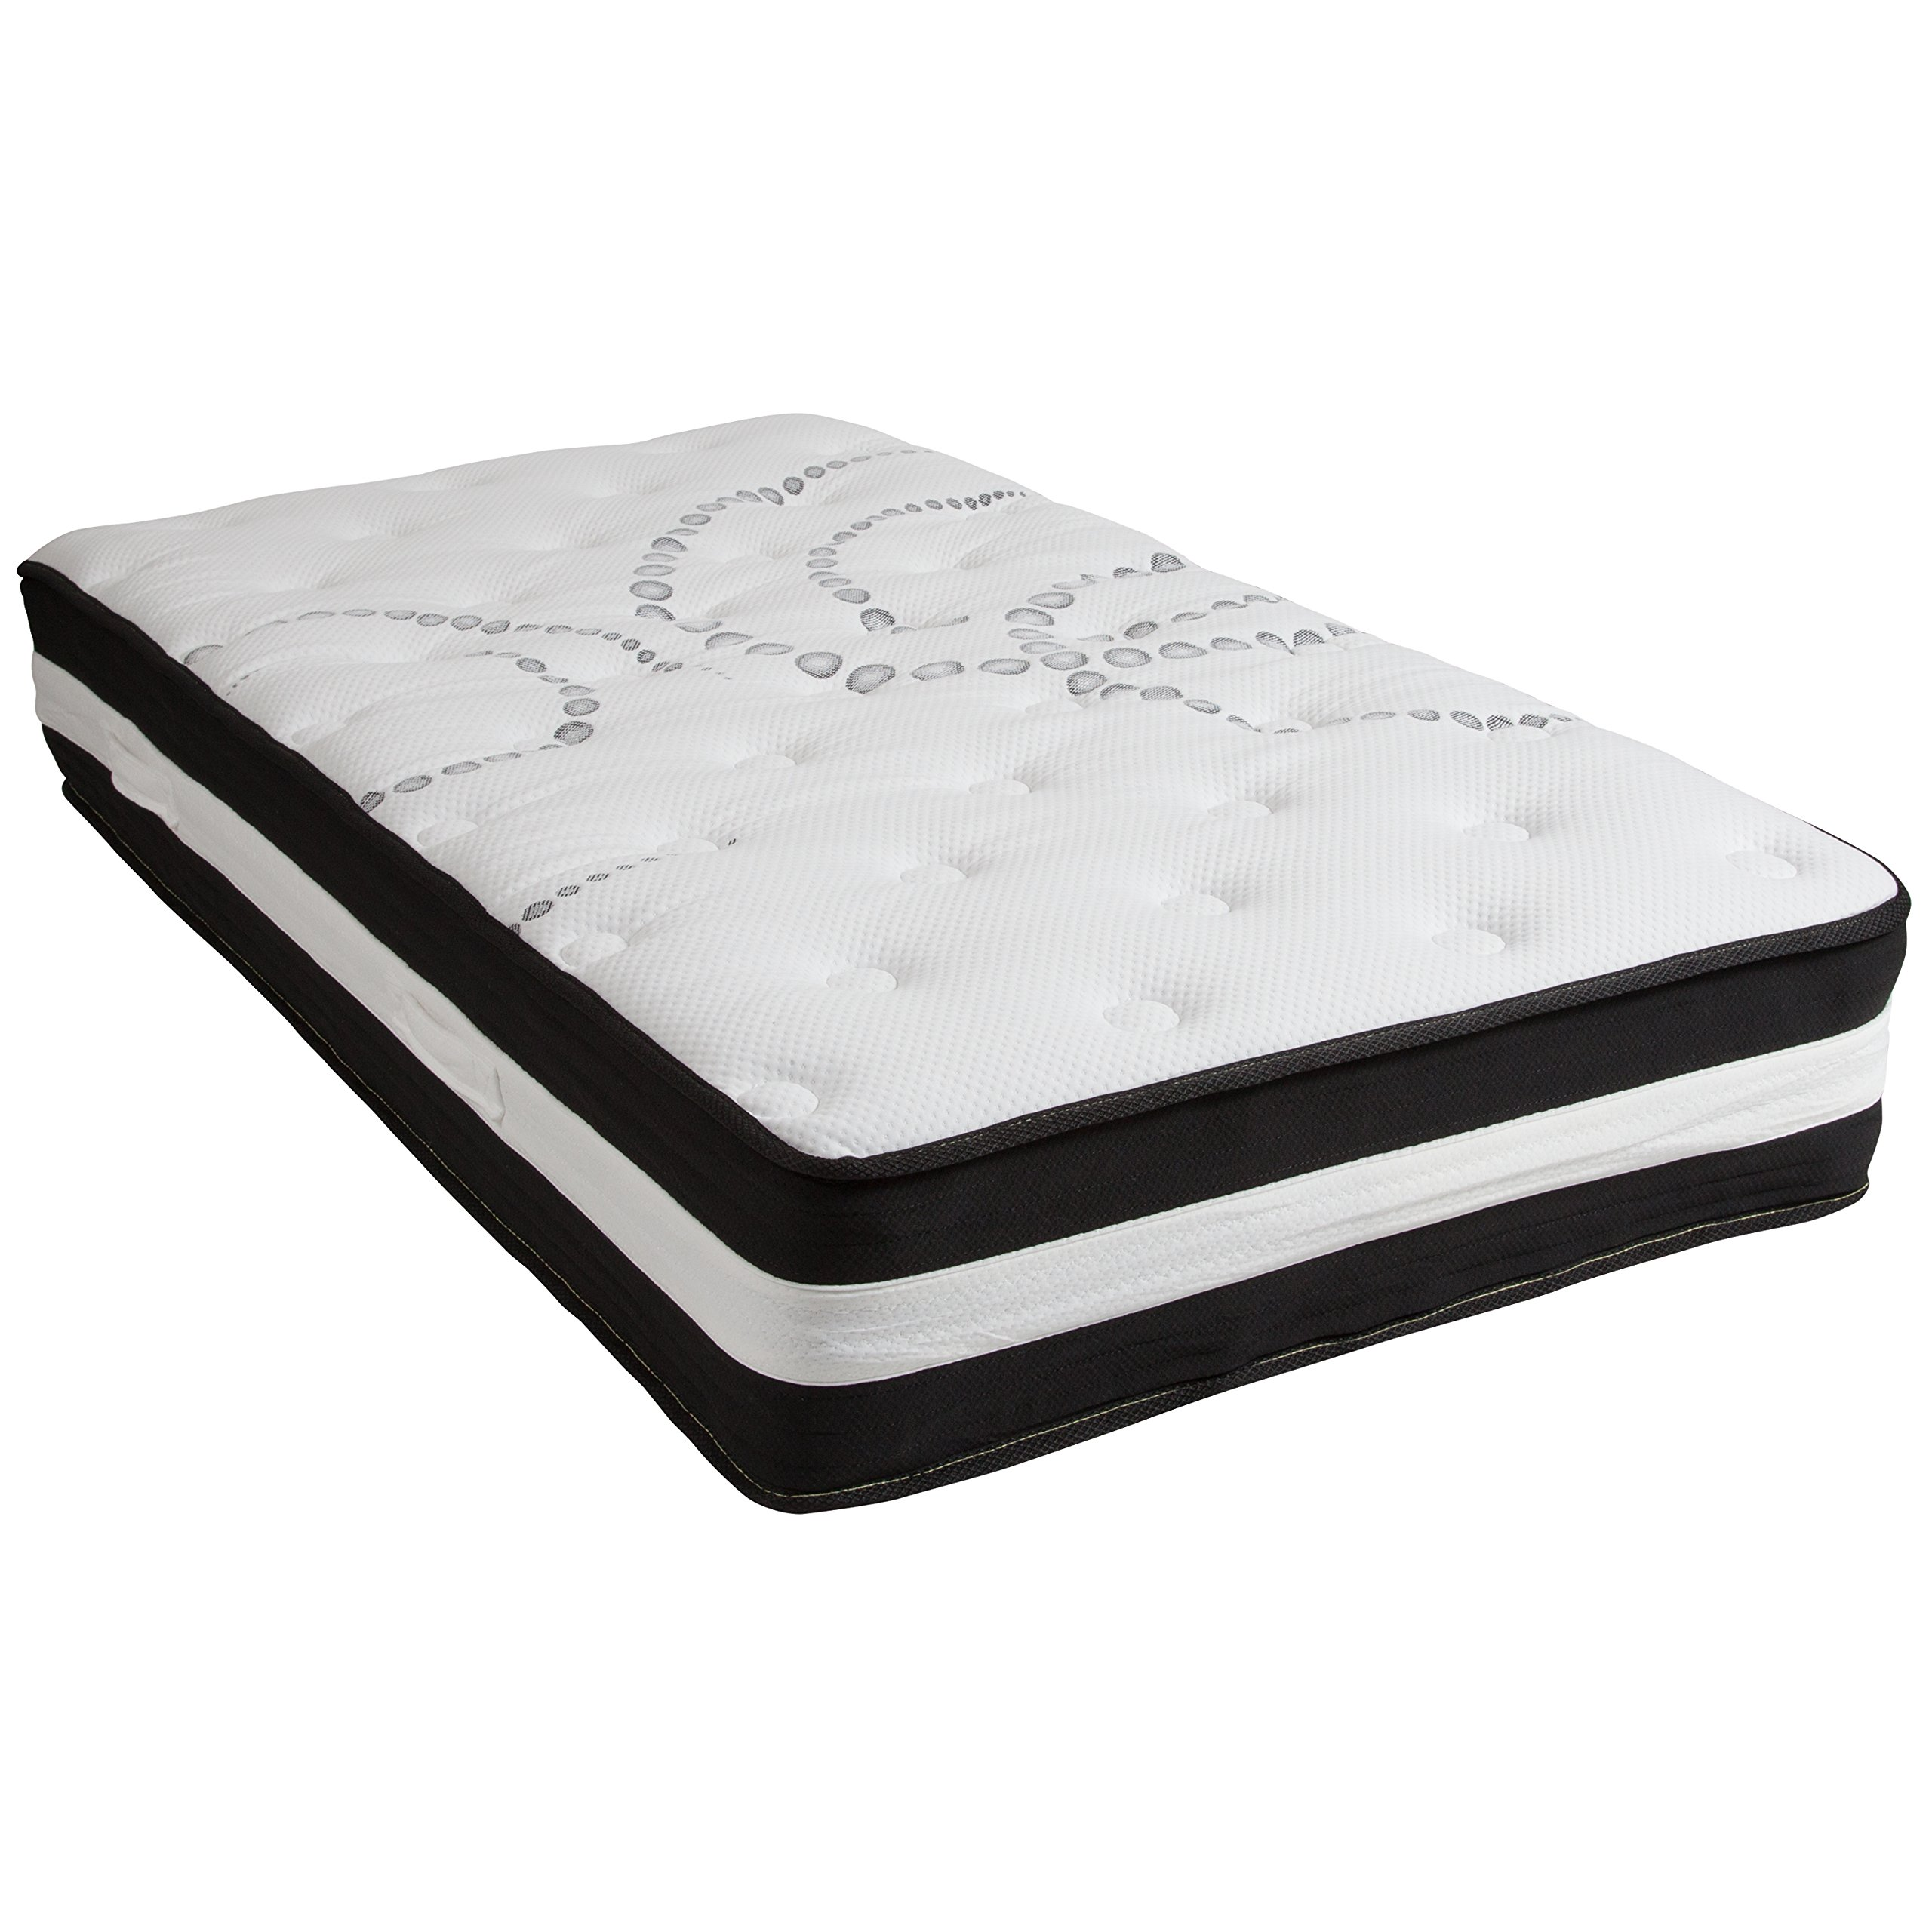 Flash Furniture Capri Comfortable Sleep 12 Inch Foam and Pocket Spring Mattress, Twin in a Box